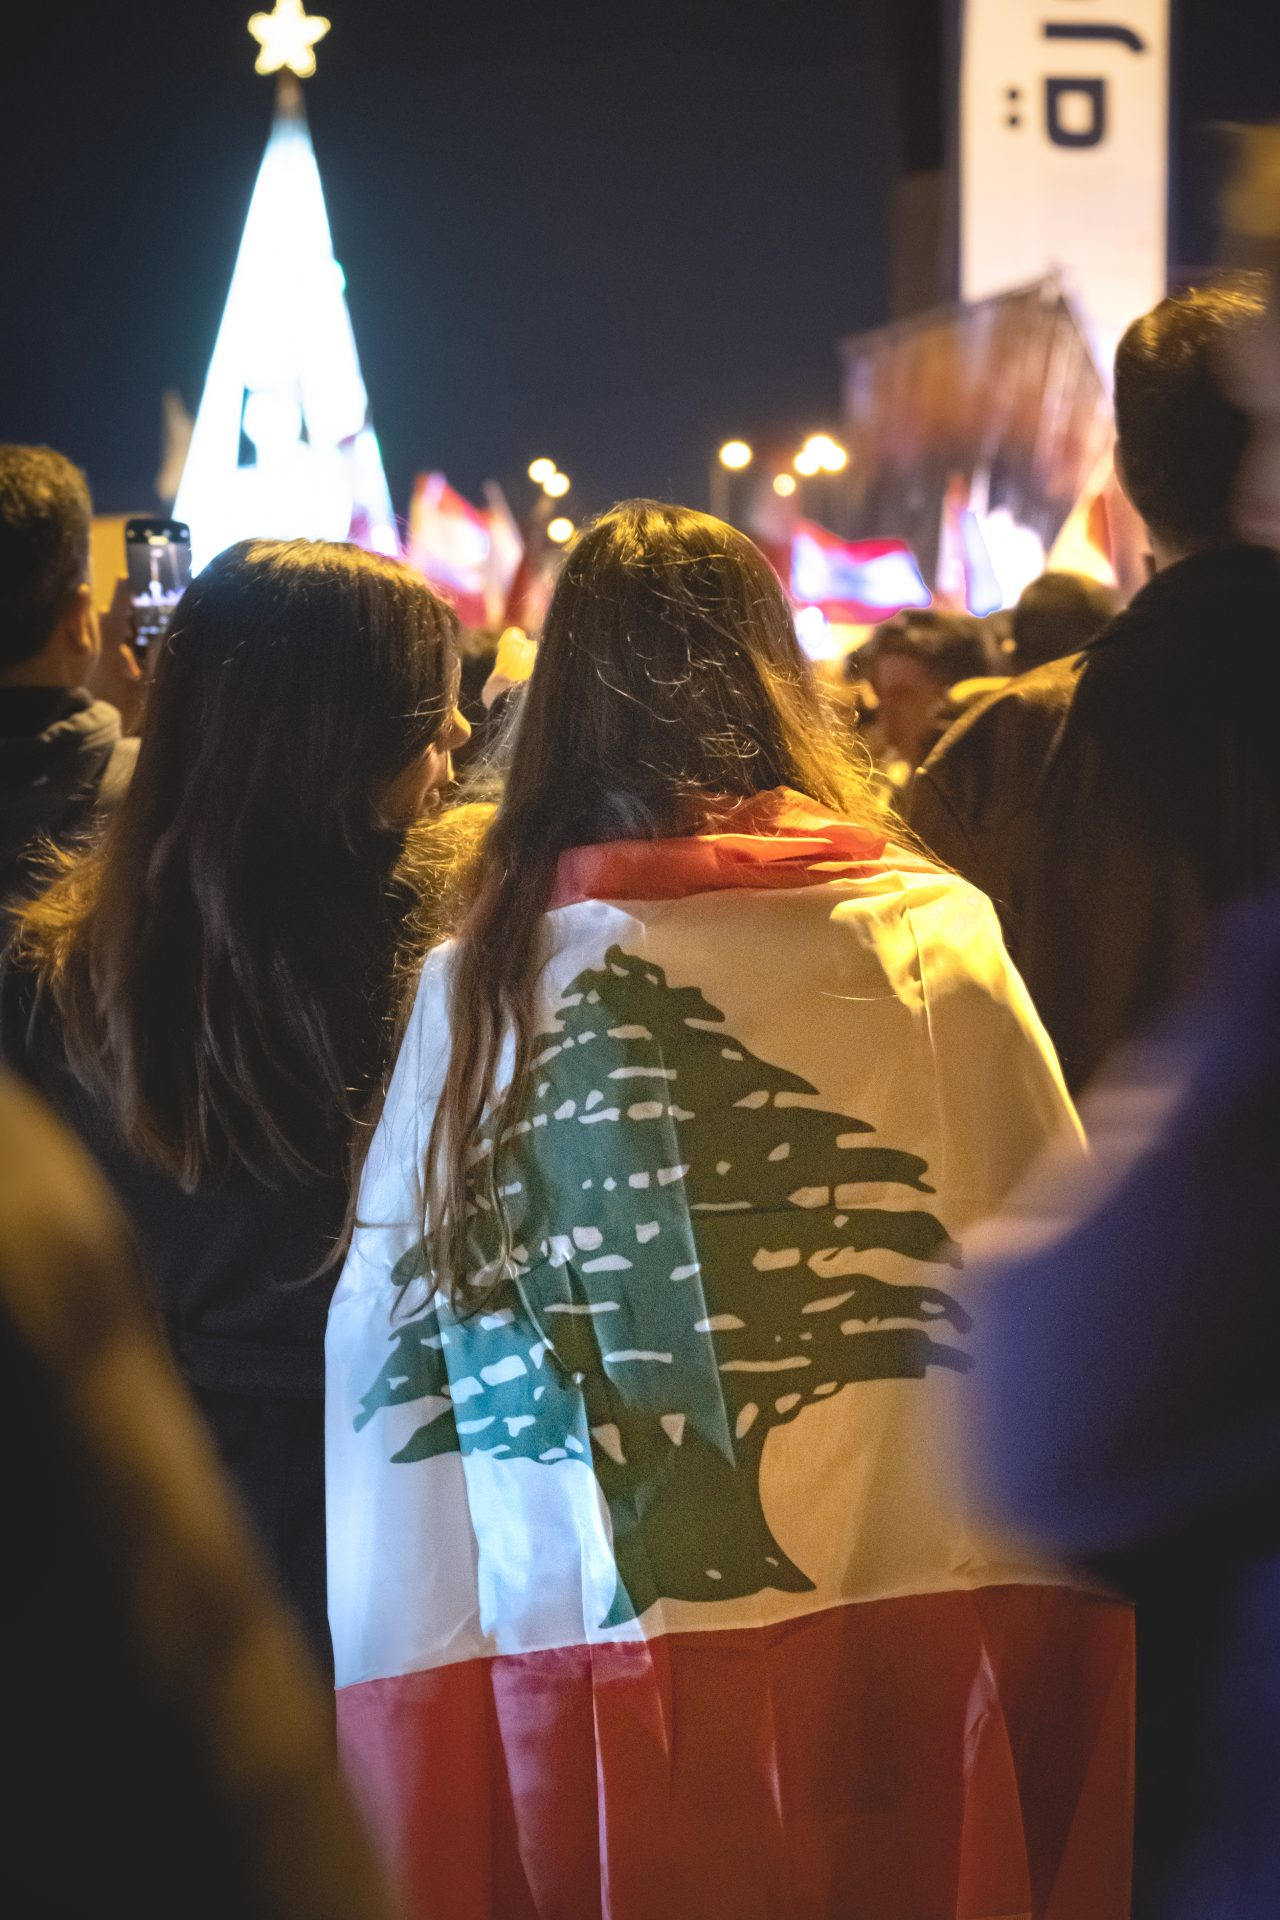 A girl during the lebanese revolution Thawra photo by Jo Kassis